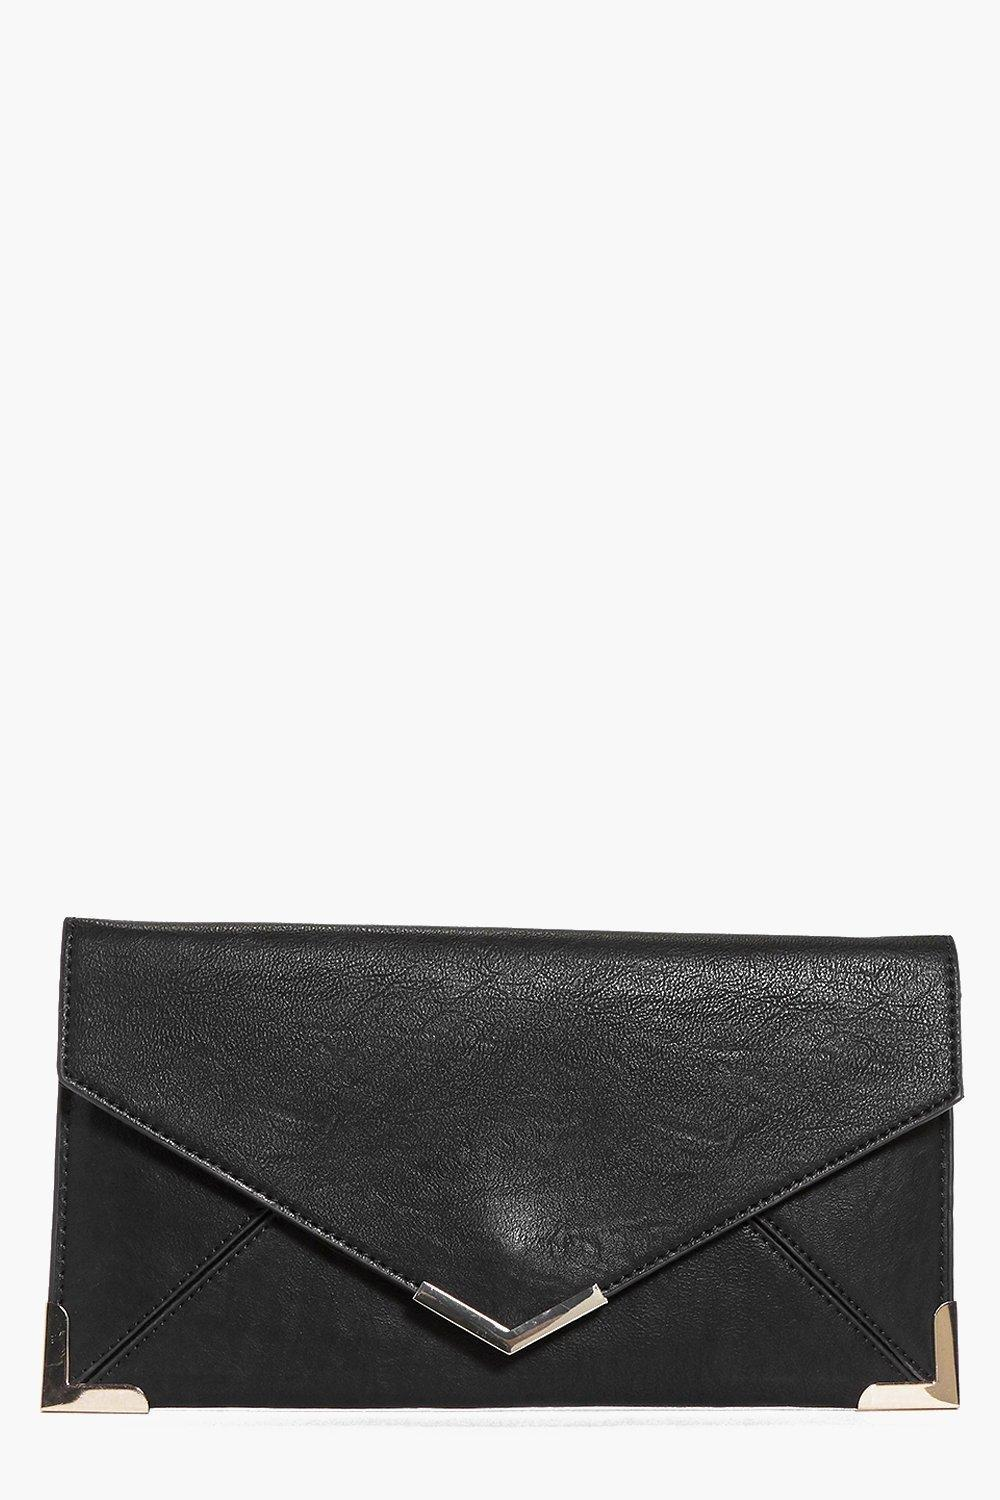 Metal Trim Envelope Clutch Black - predominant colour: black; occasions: evening, occasion; type of pattern: standard; style: clutch; length: hand carry; size: oversized; material: faux leather; pattern: plain; finish: plain; season: a/w 2016; wardrobe: event